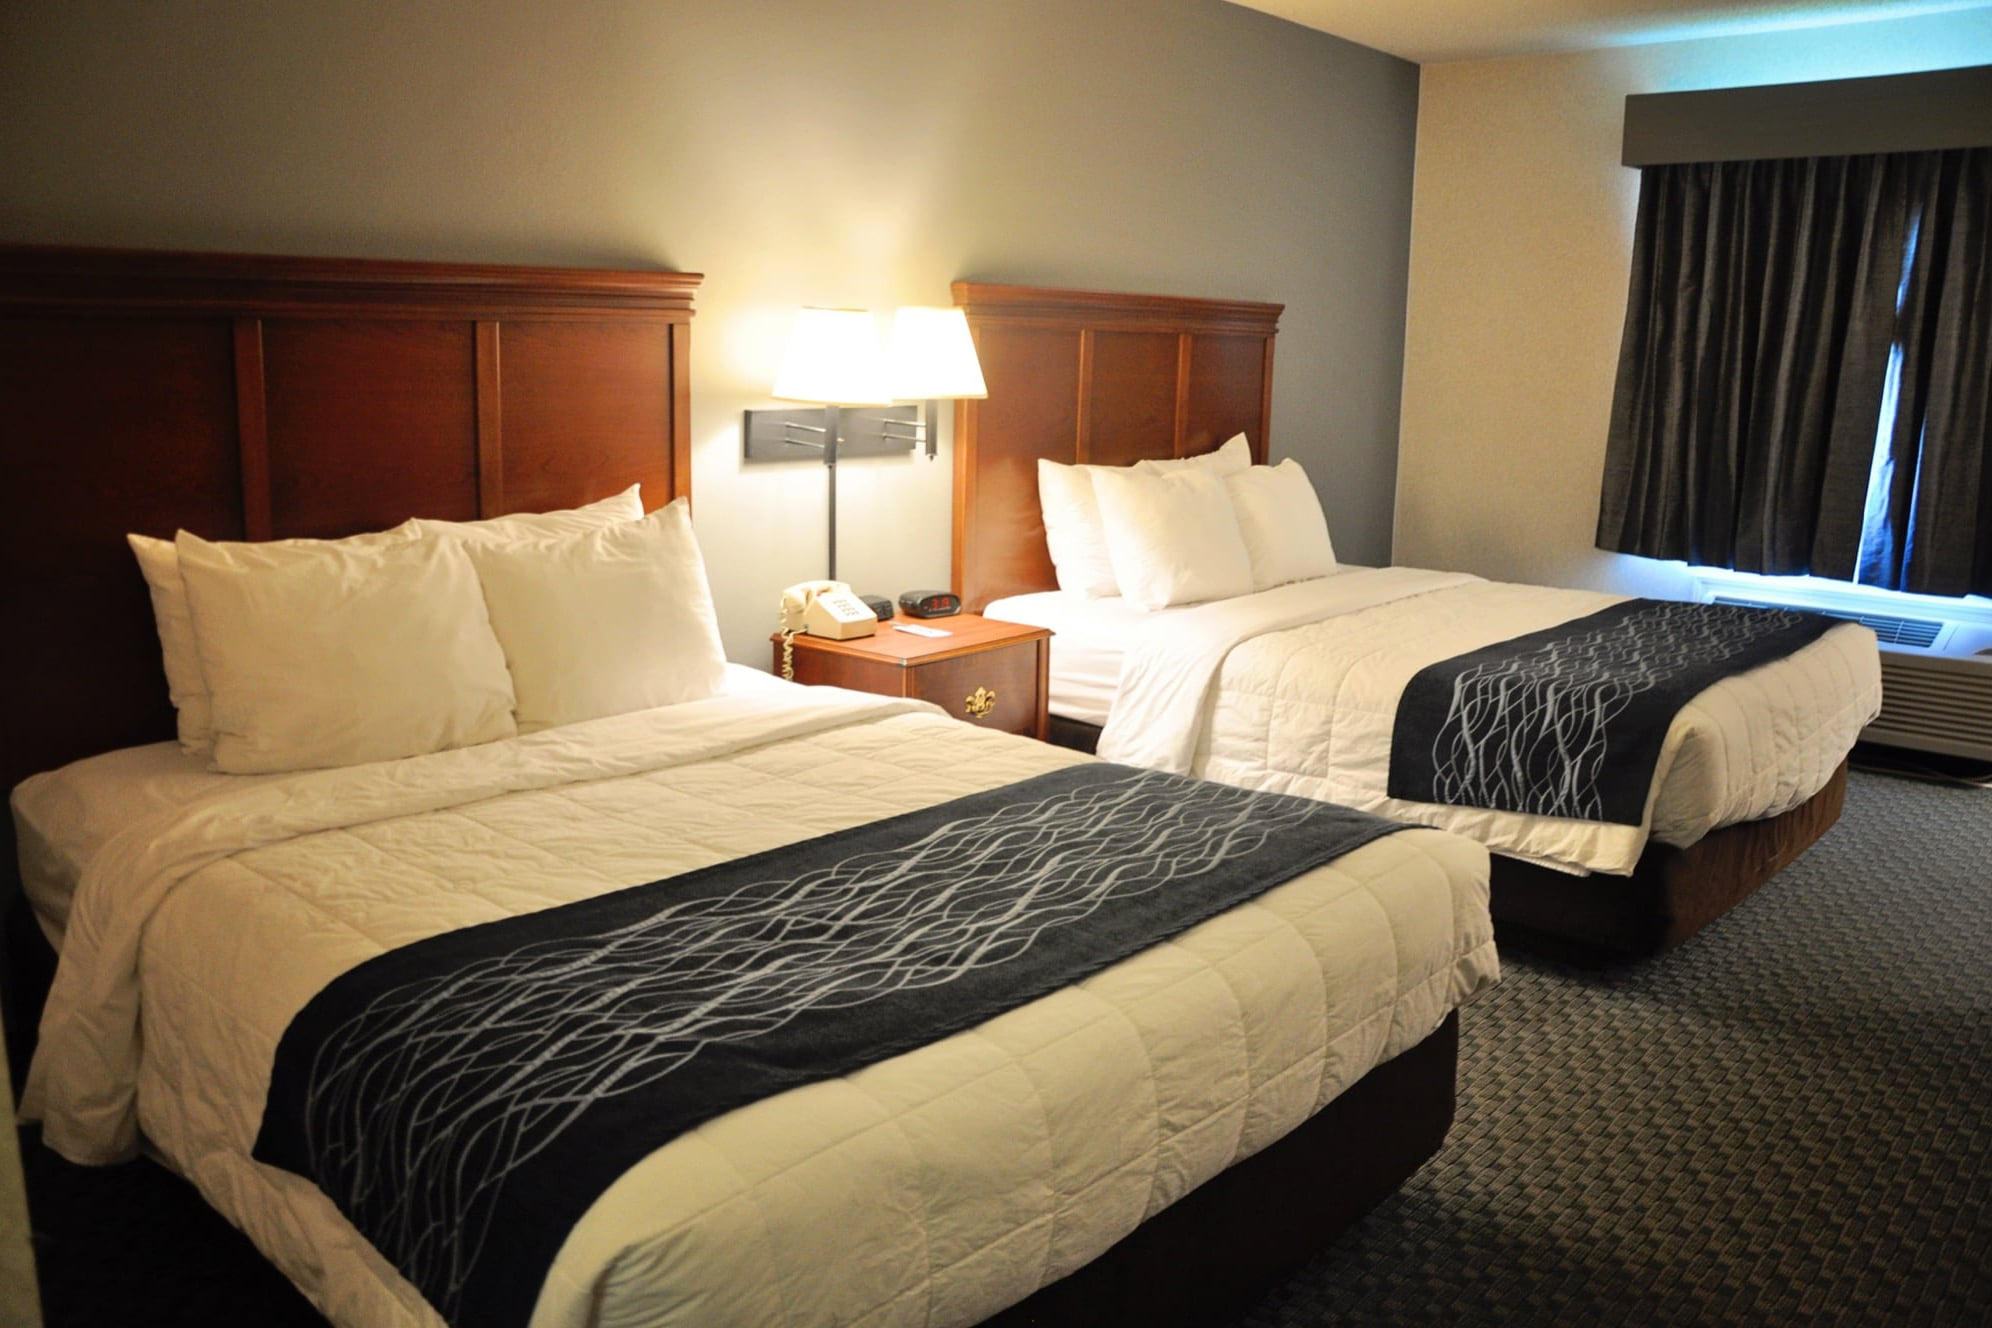 Our Standard room features 2 queen size beds with 4 comfy pillows on each bed, 2 firm and 2 soft so you can pick your favorite!